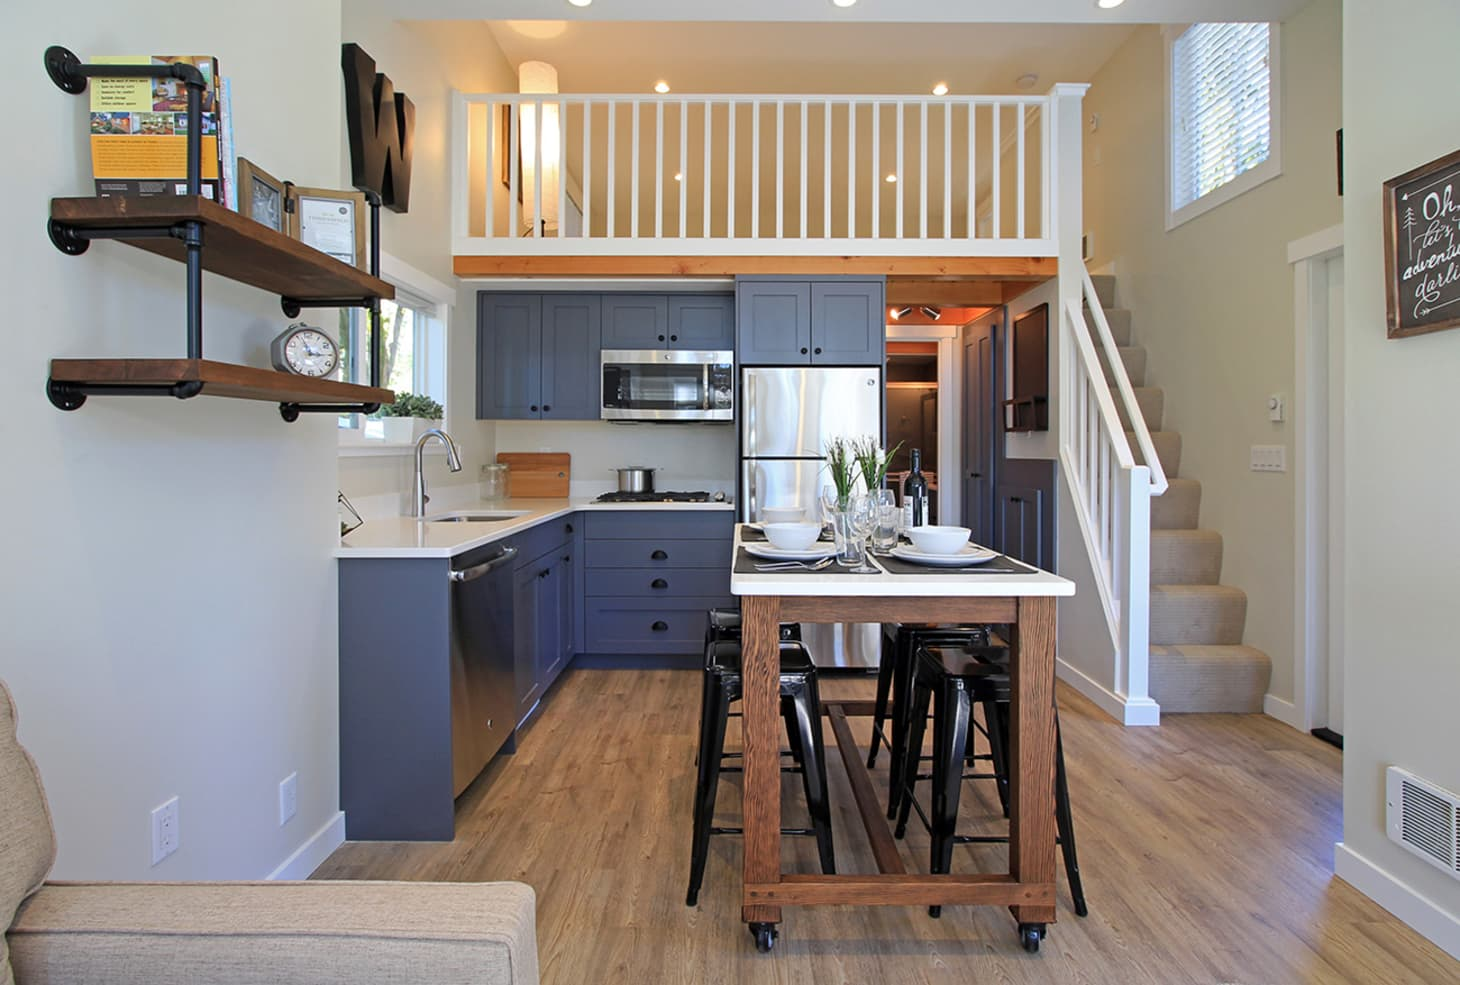 Full One Bedroom Tiny House Layout 400 Square Feet ...